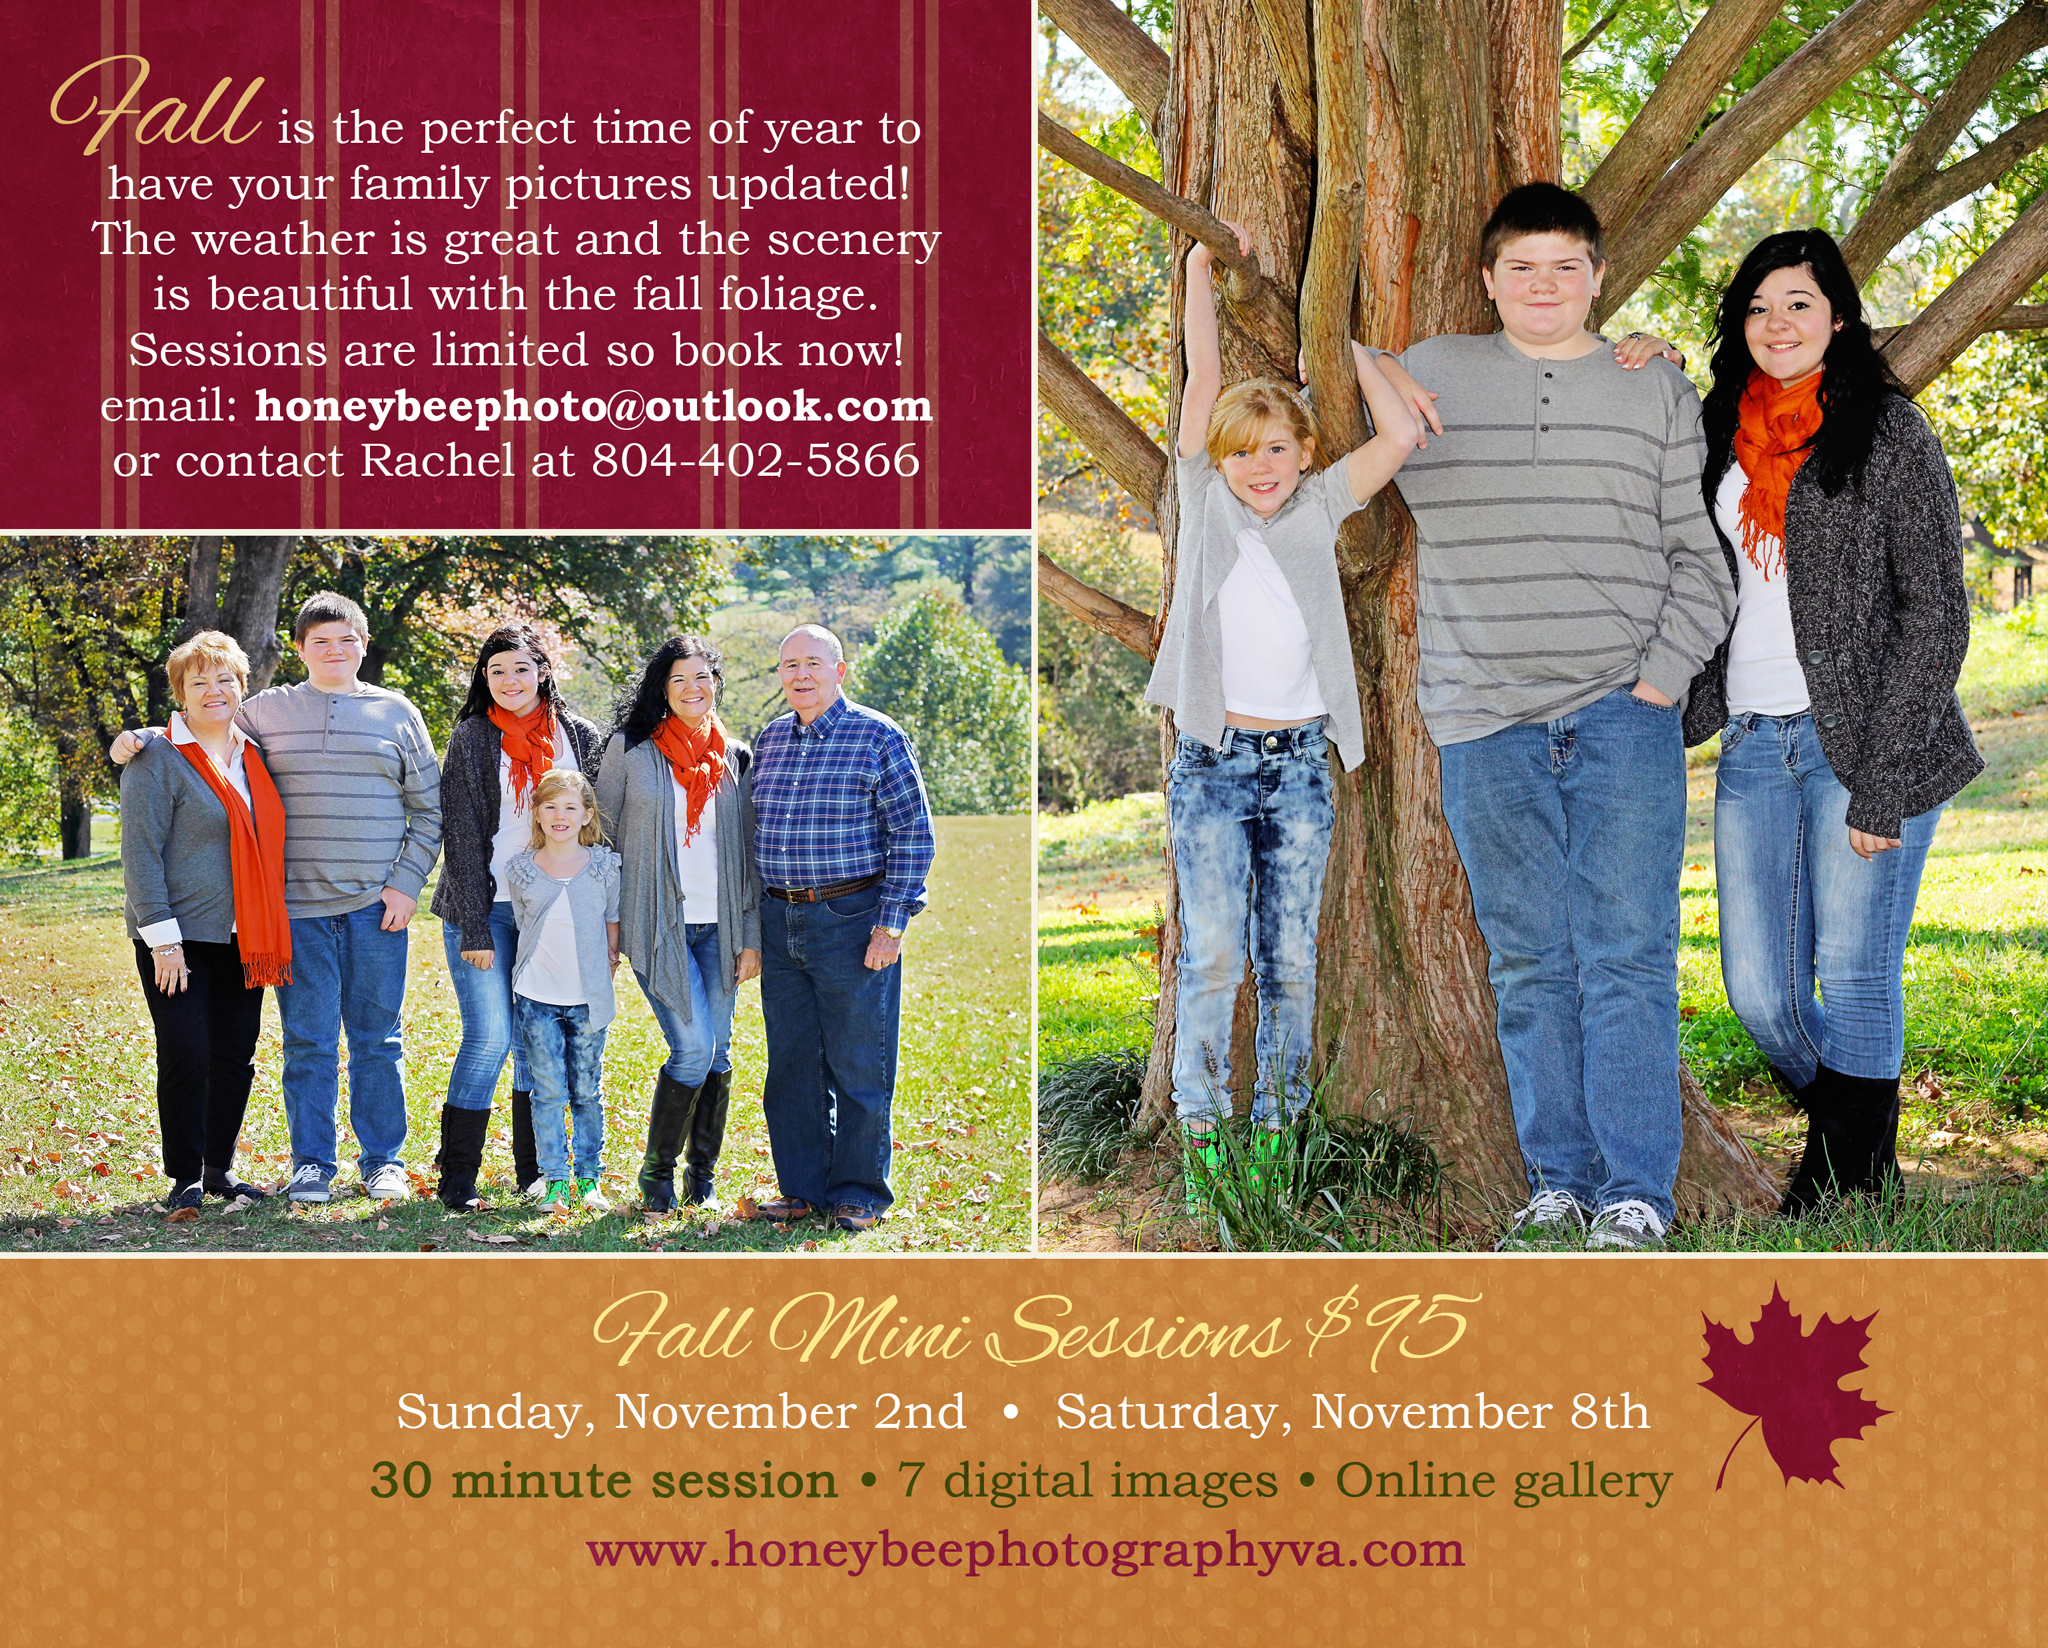 Fall Mini Sessions 2014